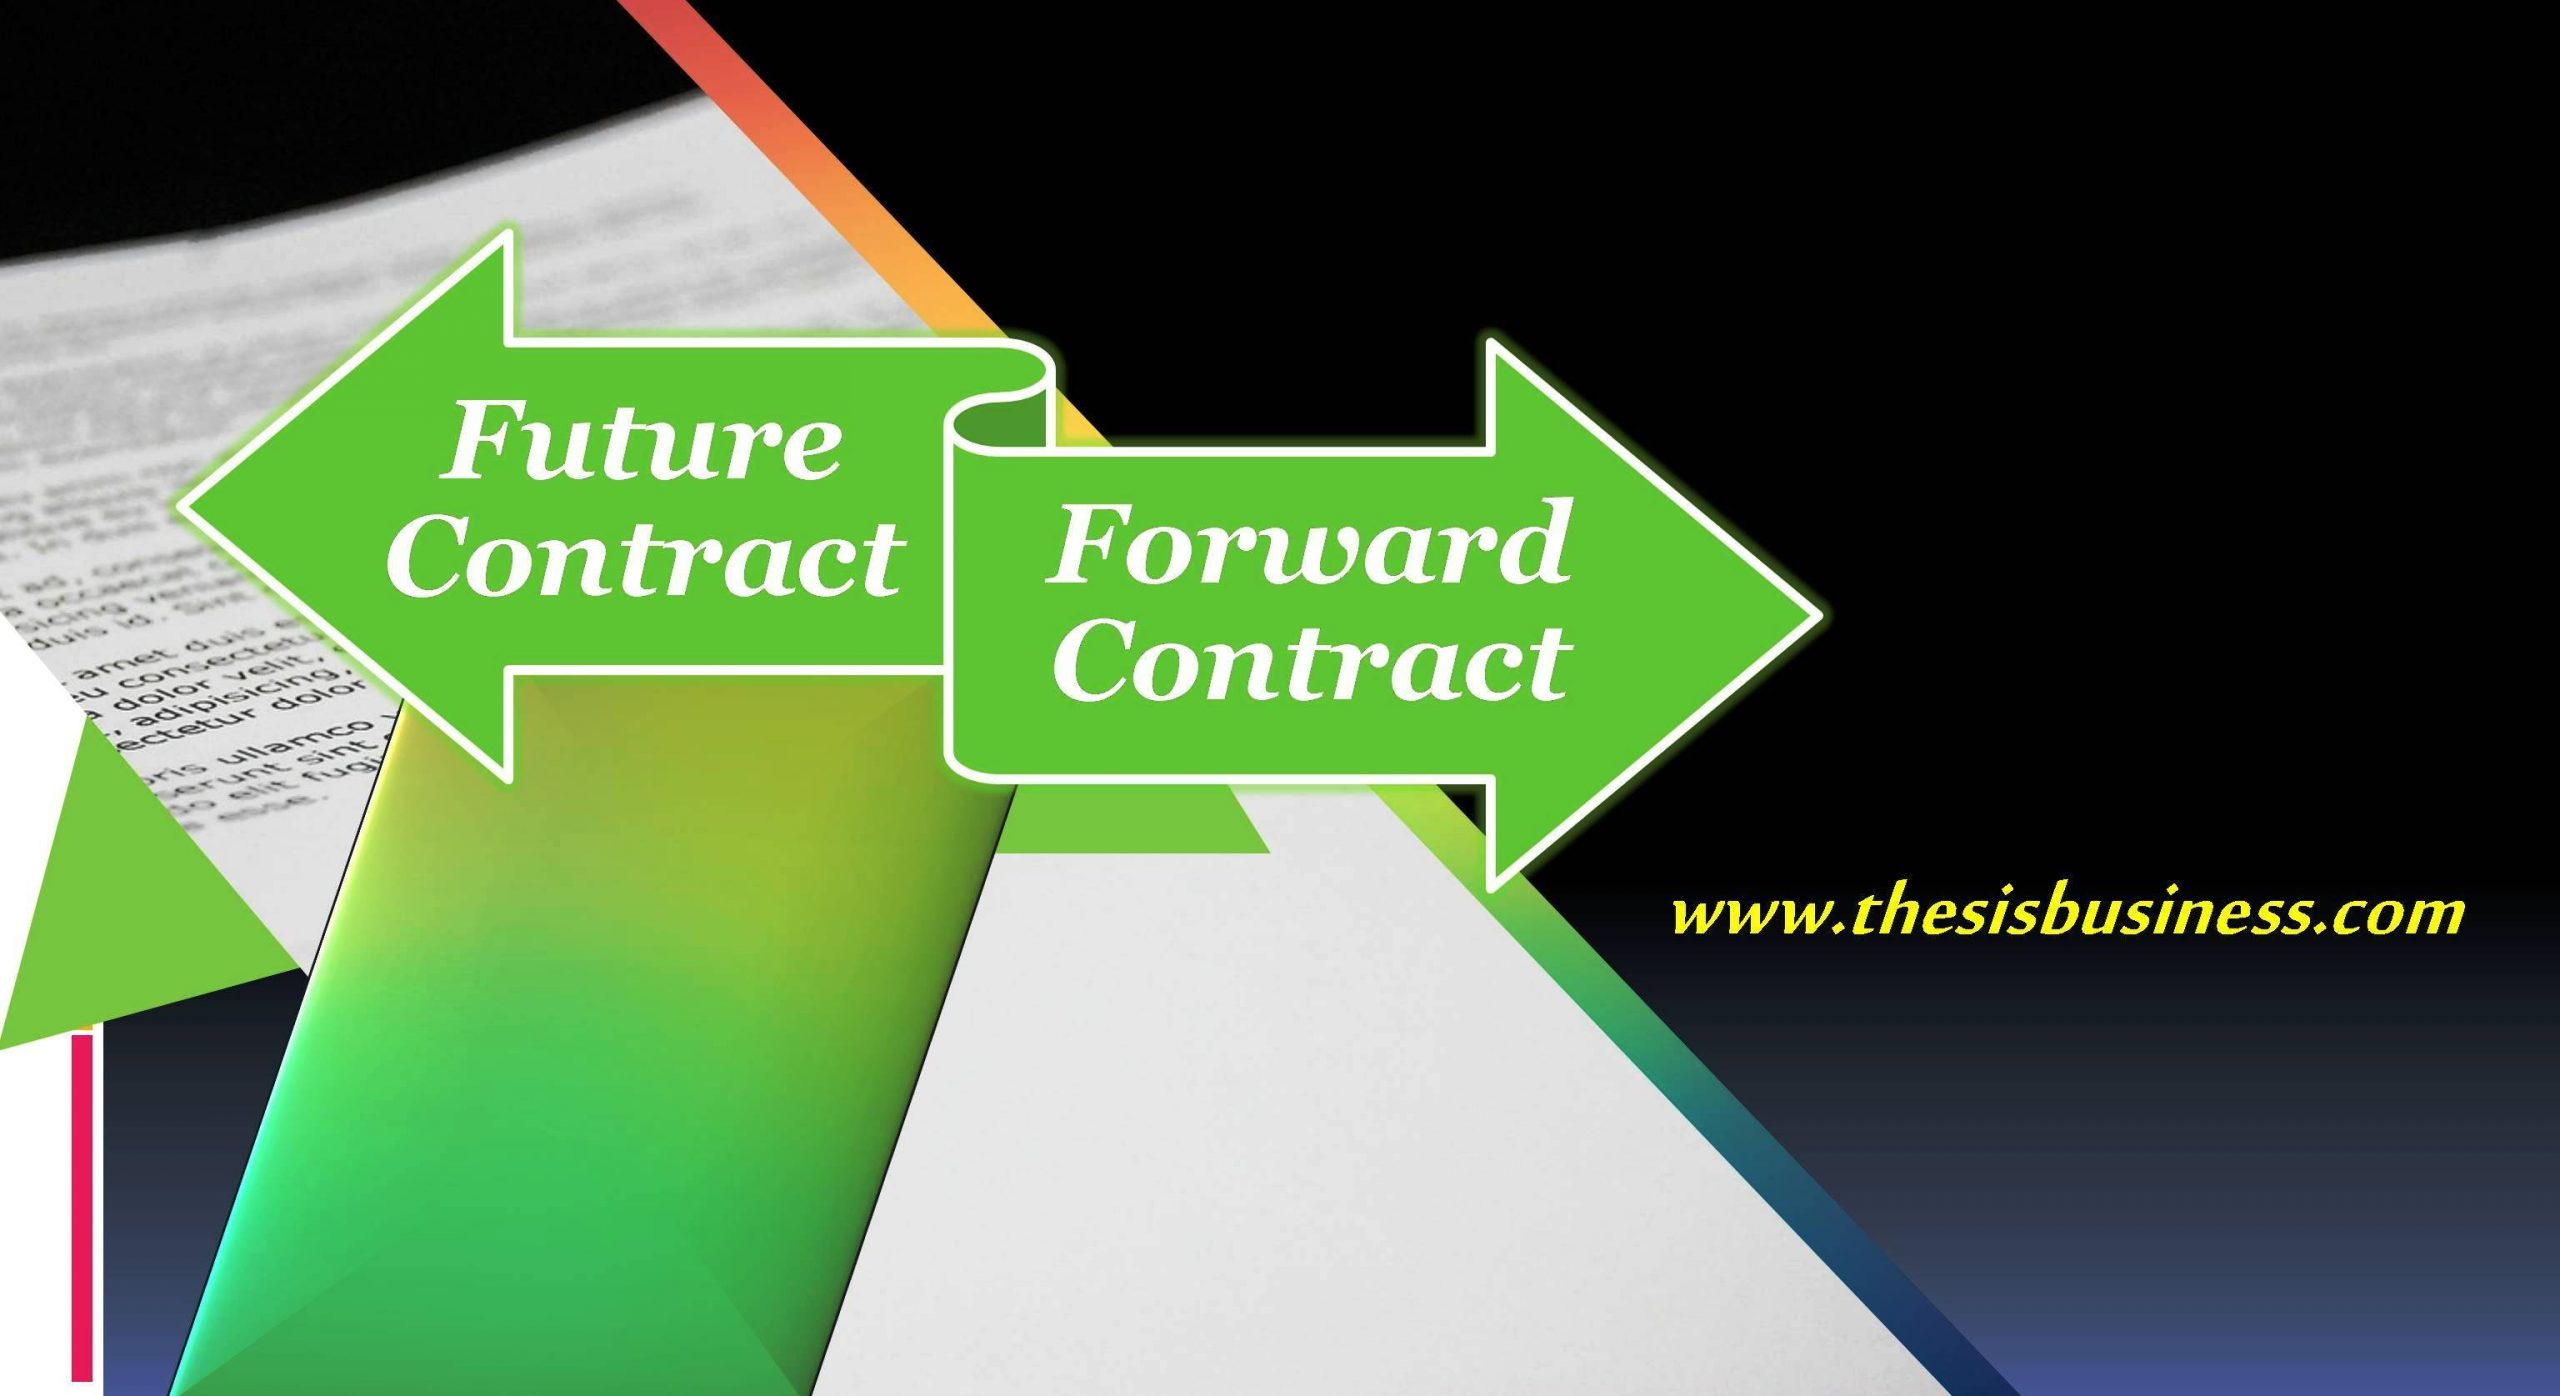 Difference between Futures and Forward Contract